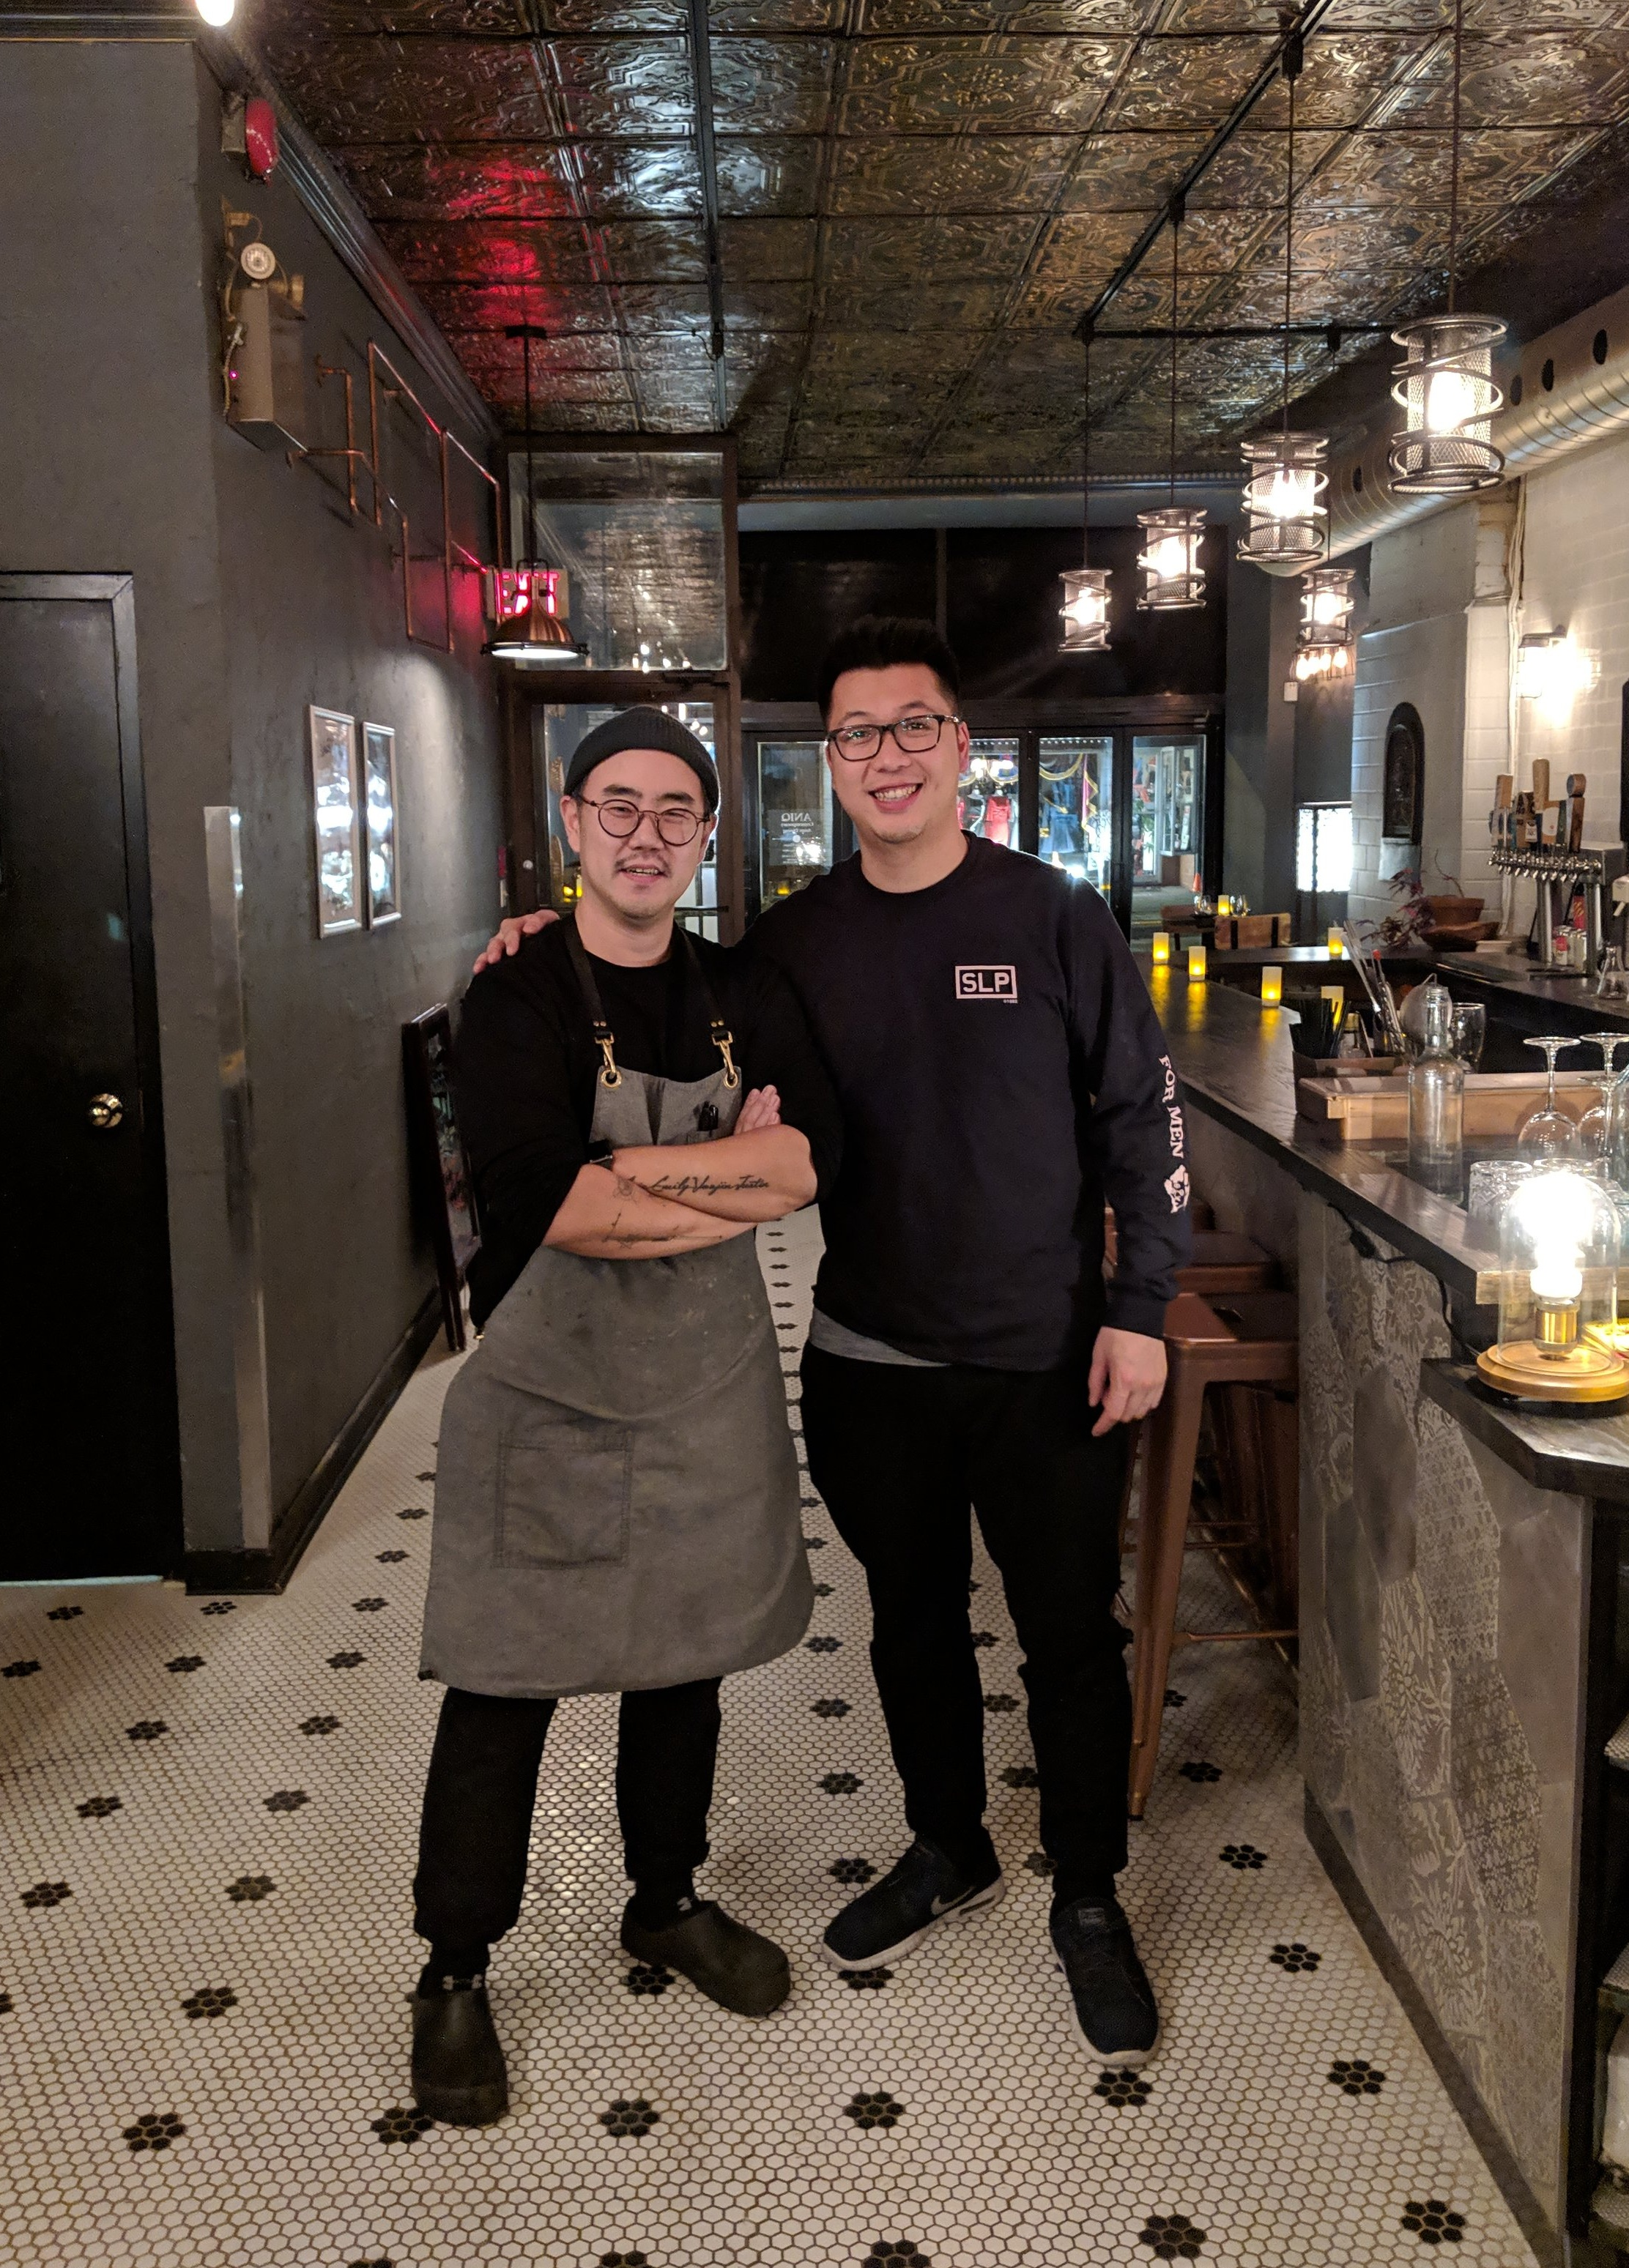 Aniq x GFT (Chef and Owner Eric Oh + Me)